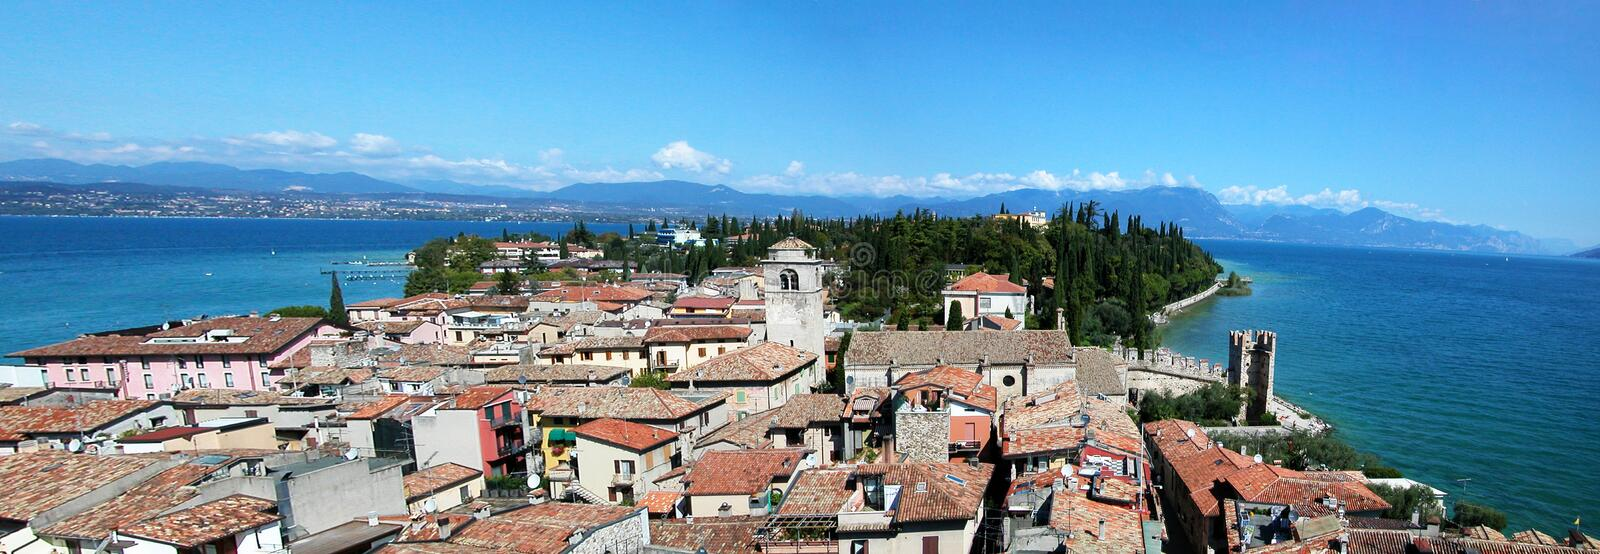 The Garda Lake in Italy. Panoramic view of the Garda Lake from Sirmione royalty free stock images